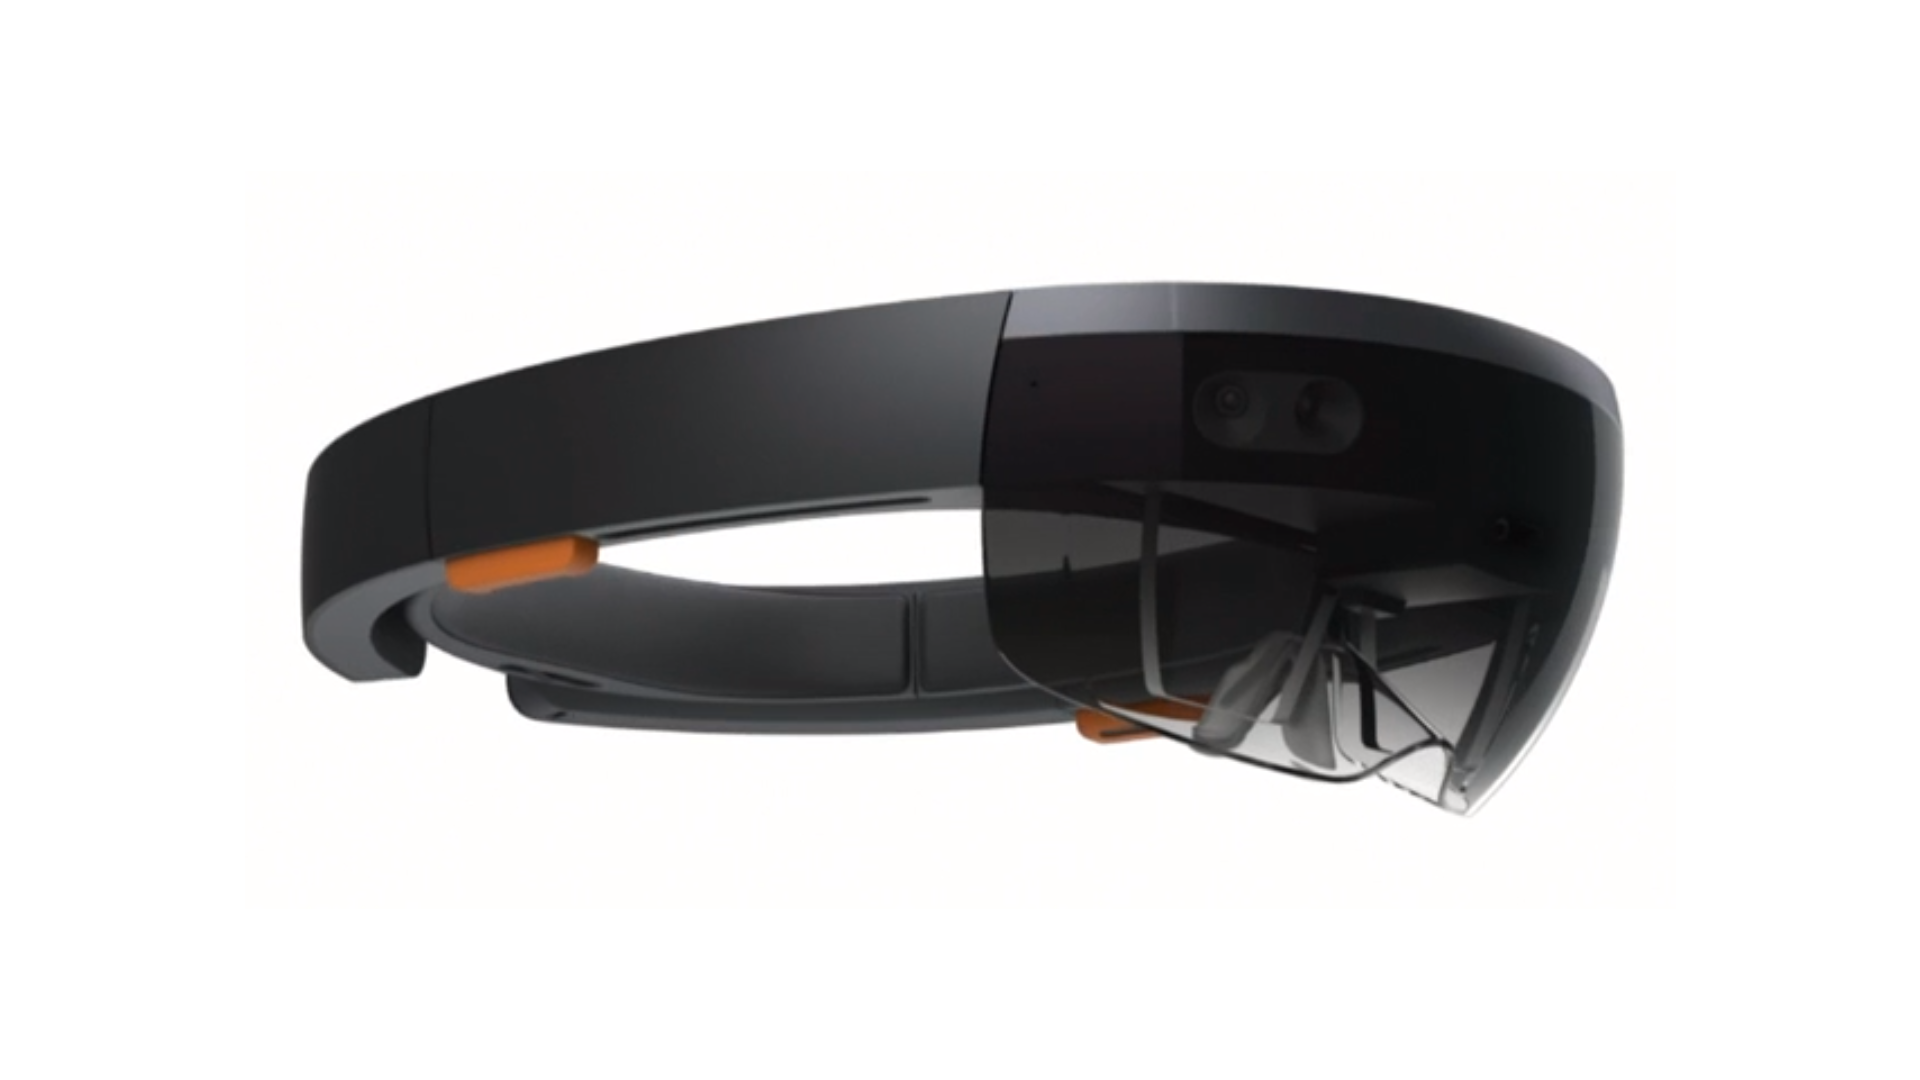 Allcloud Joins HoloLens Developer Program